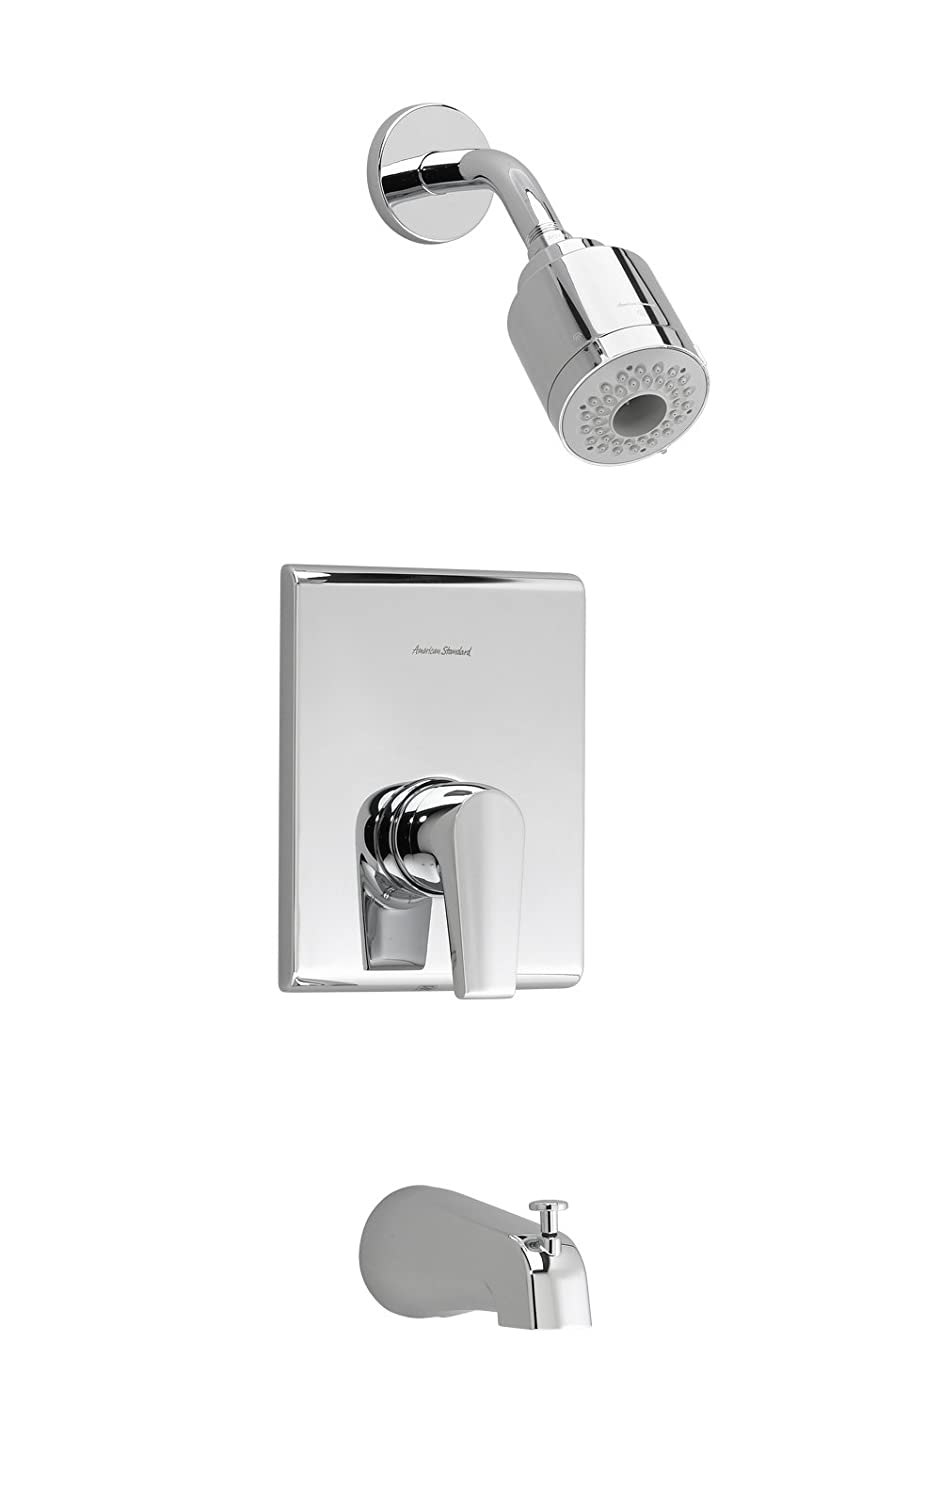 American Standard T590.508.002 Studio Bath and Shower Trim Kit with 3-Function Flowise Showerhead, Polished Chrome